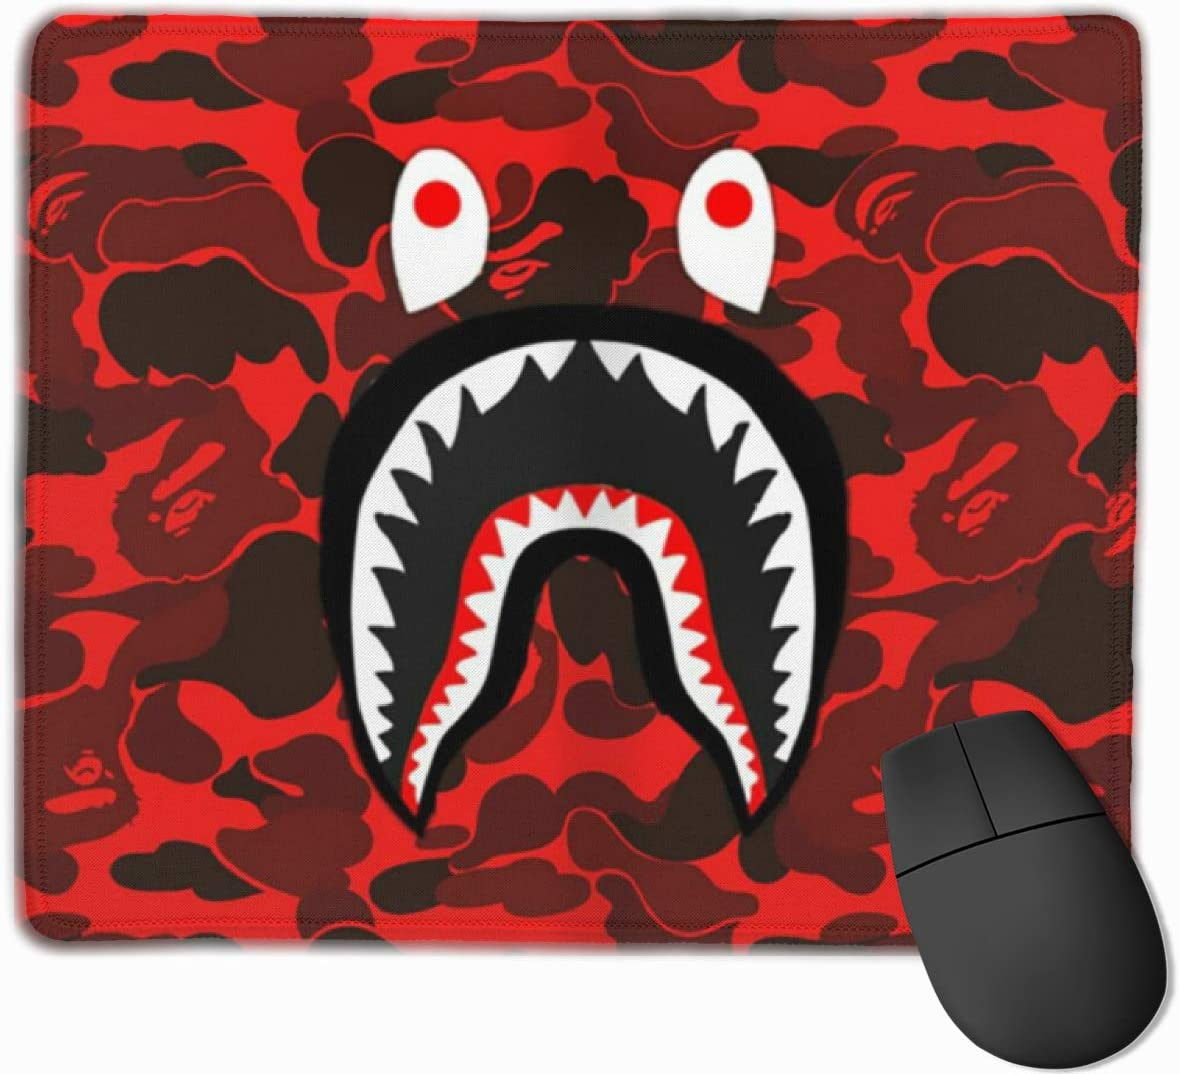 Ba-pe Mouse Pad Non-Slip Rubber Gaming Mouse Pad Rectangle Mouse Pads for Computers Laptop Multi-Style